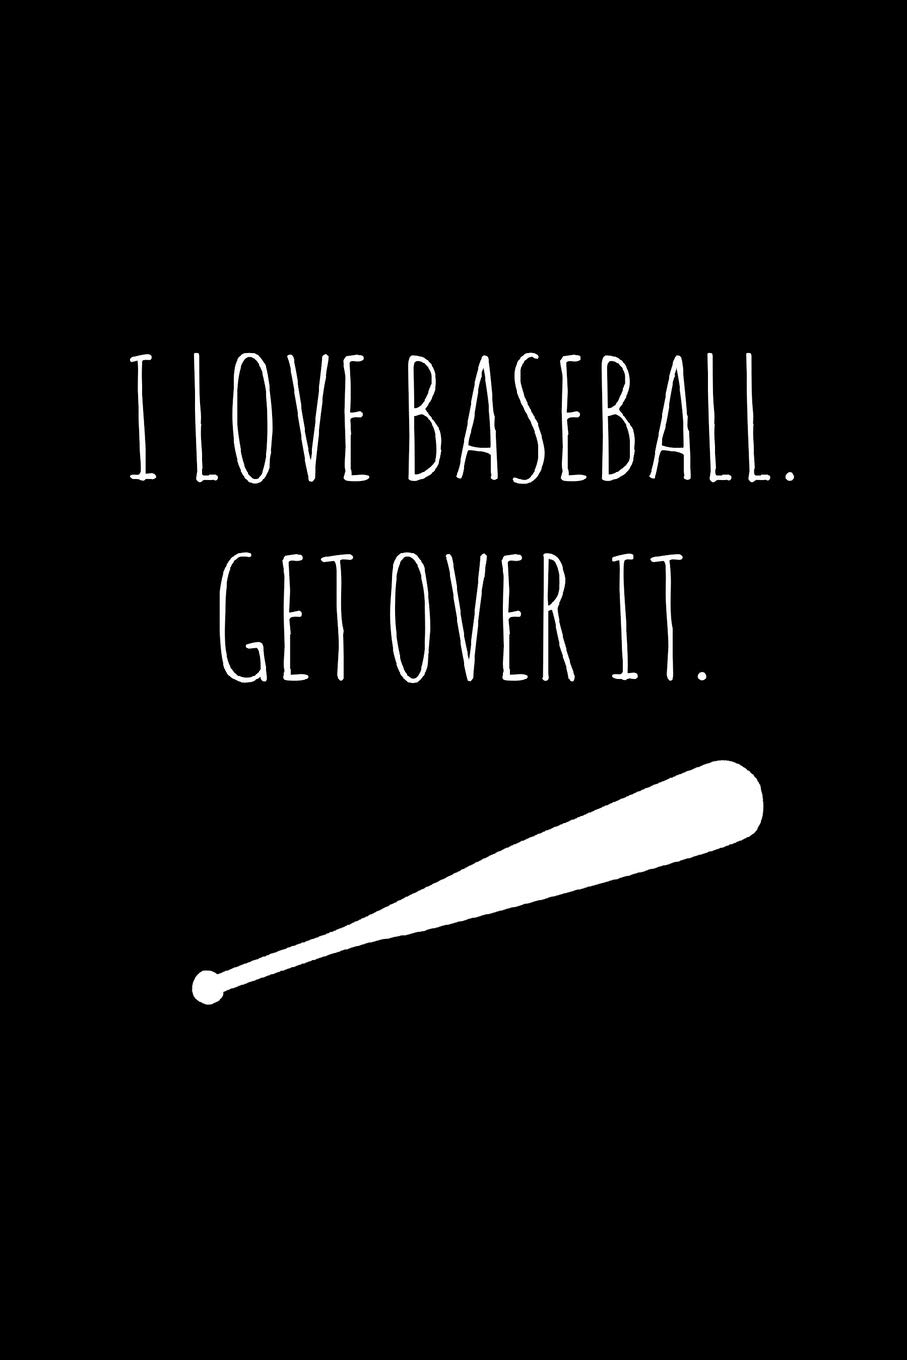 I Love Baseball Funny Gag Gifts For Baseball Lovers Birthday Christmas Valentine S Gift Idea For Baseball Players Small Lined Diary Publishing Lol Thingy 9781673822069 Amazon Com Books